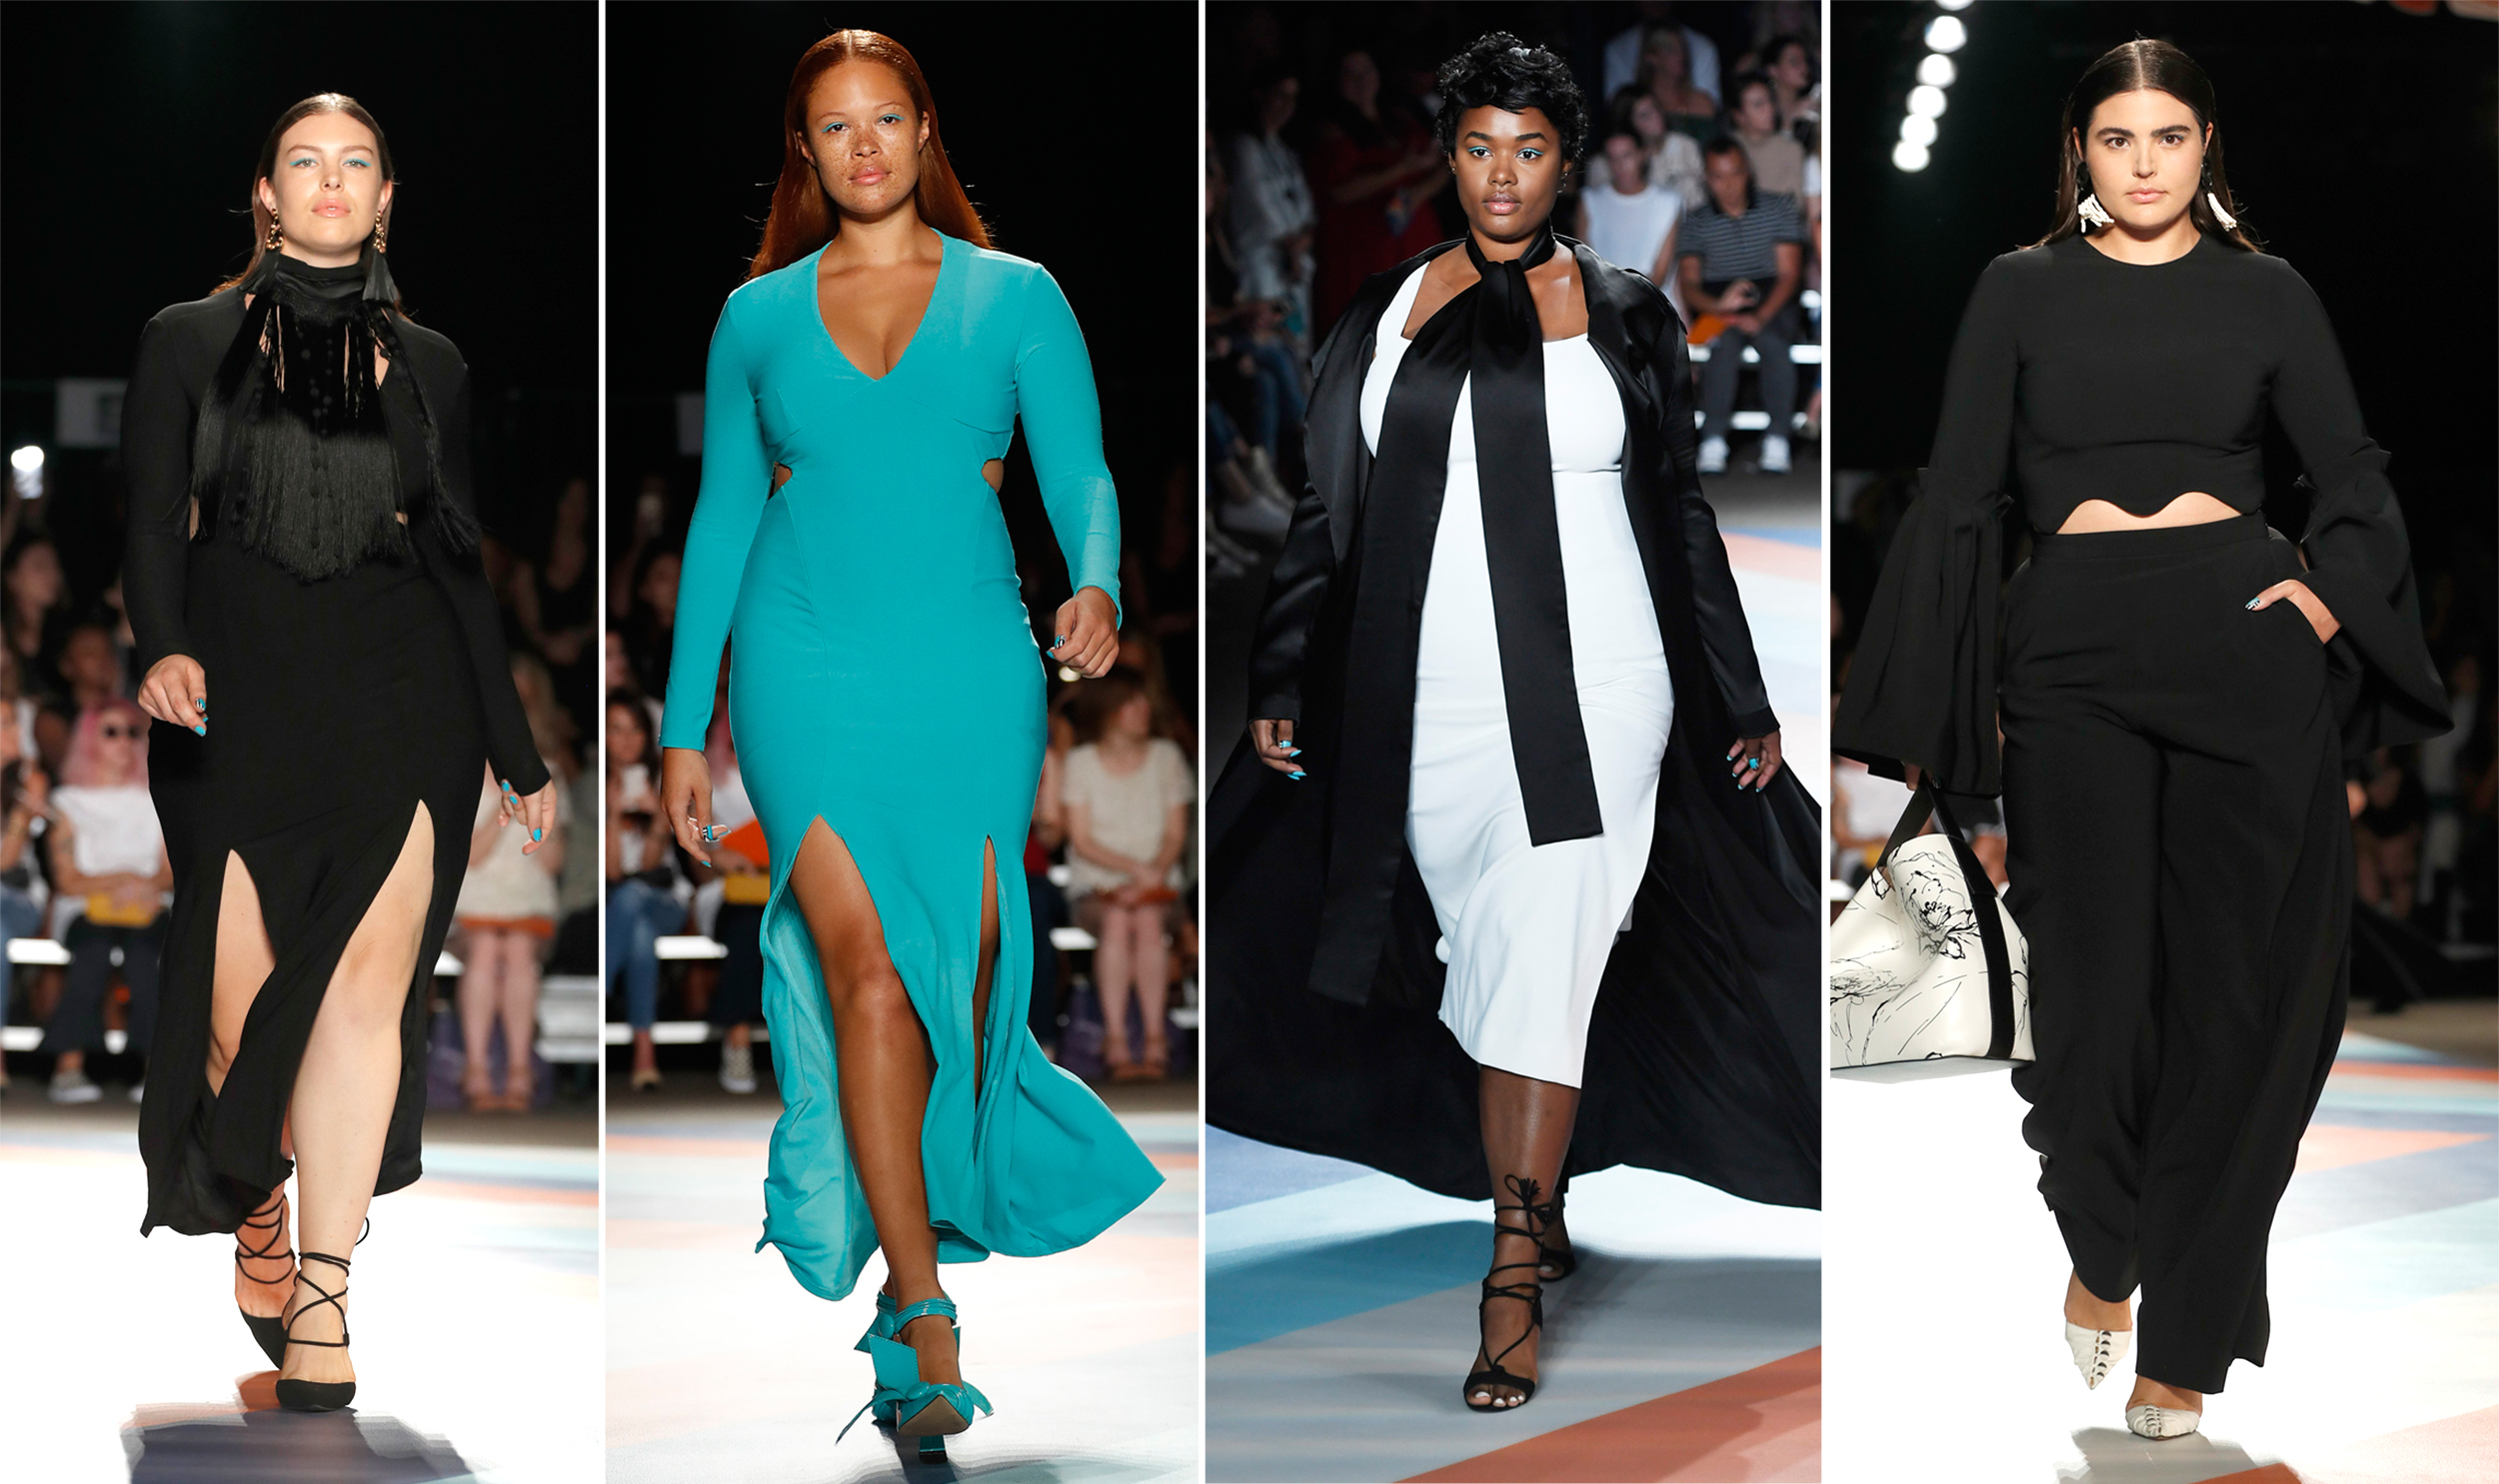 christian siriano sends 5 plussize models down the runway